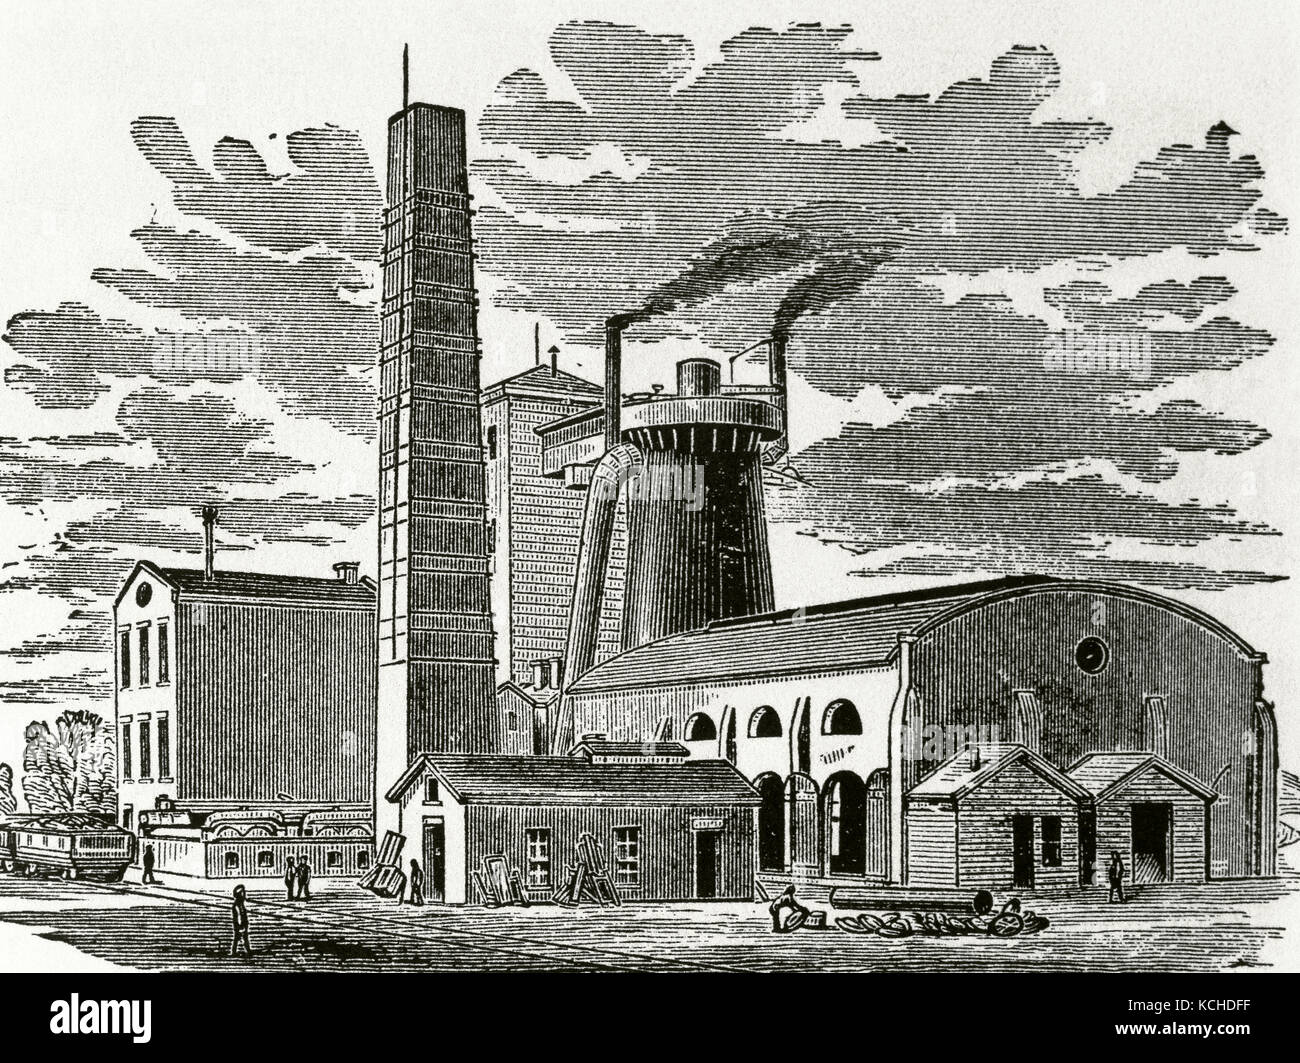 History of the United States. 19th century. Kentucky. The Ashland Furnace and Coal Works, 1876. Engraving. - Stock Image